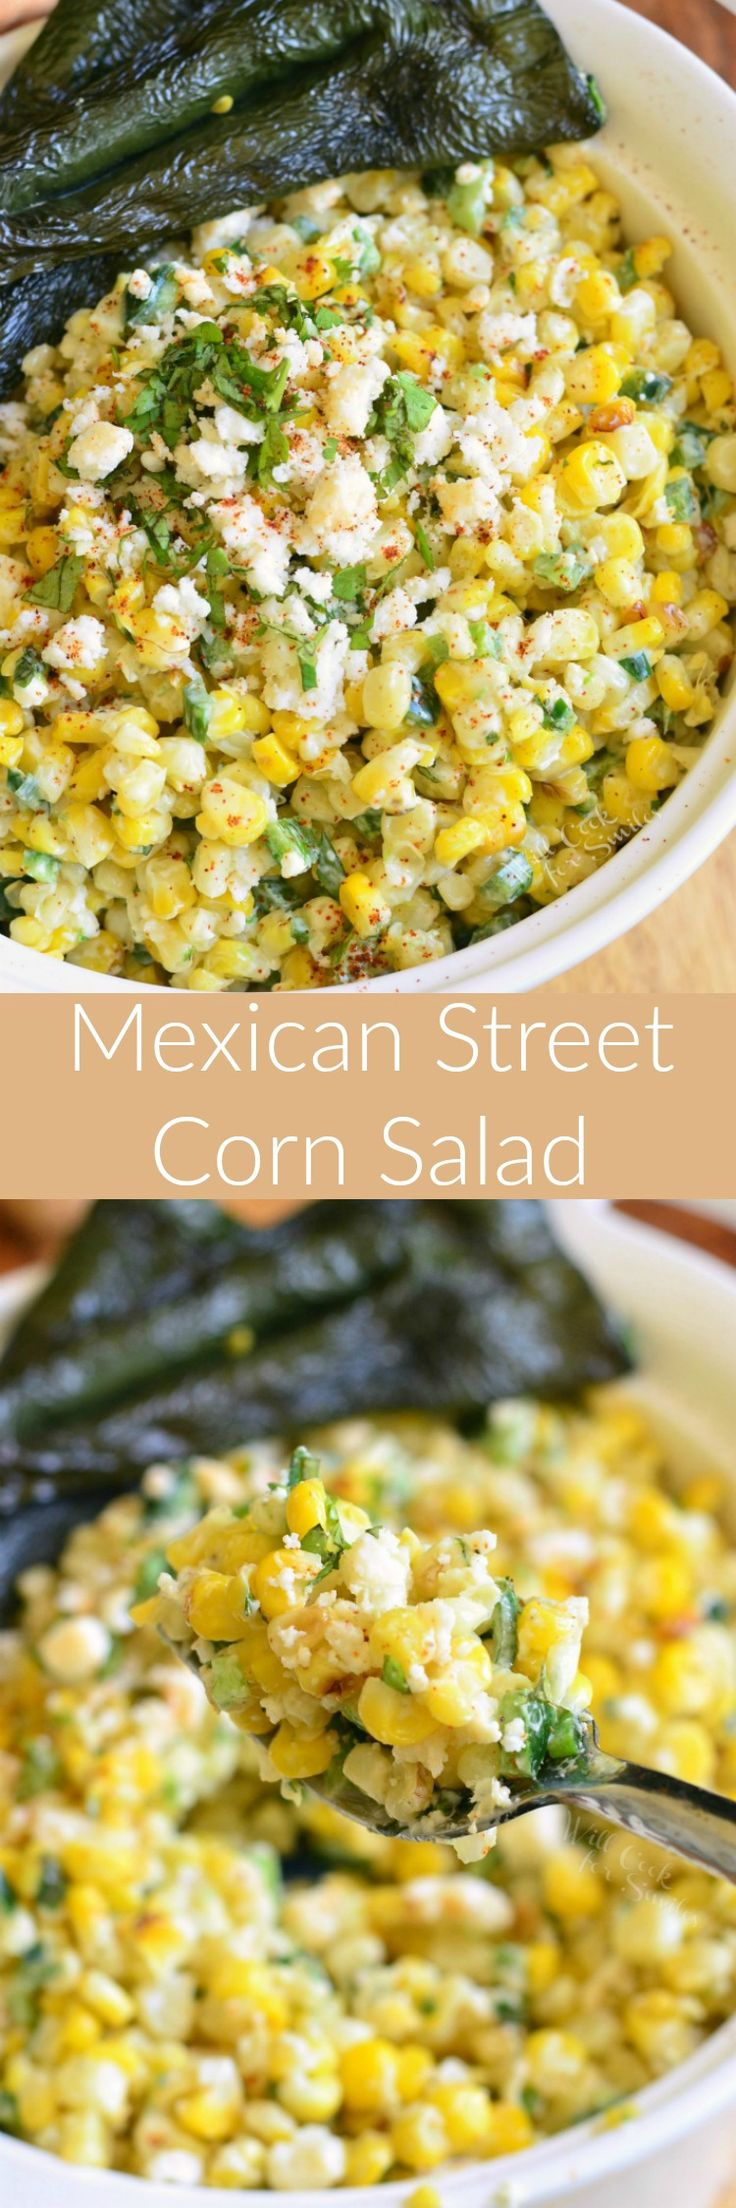 Mexican Street Corn Salad. This delicious Mexican Street Corn Salad is made with grilled corn, grilled poblano peppers, queso fresco, fresh herbs, and more.(Mexican Recipes Salad)